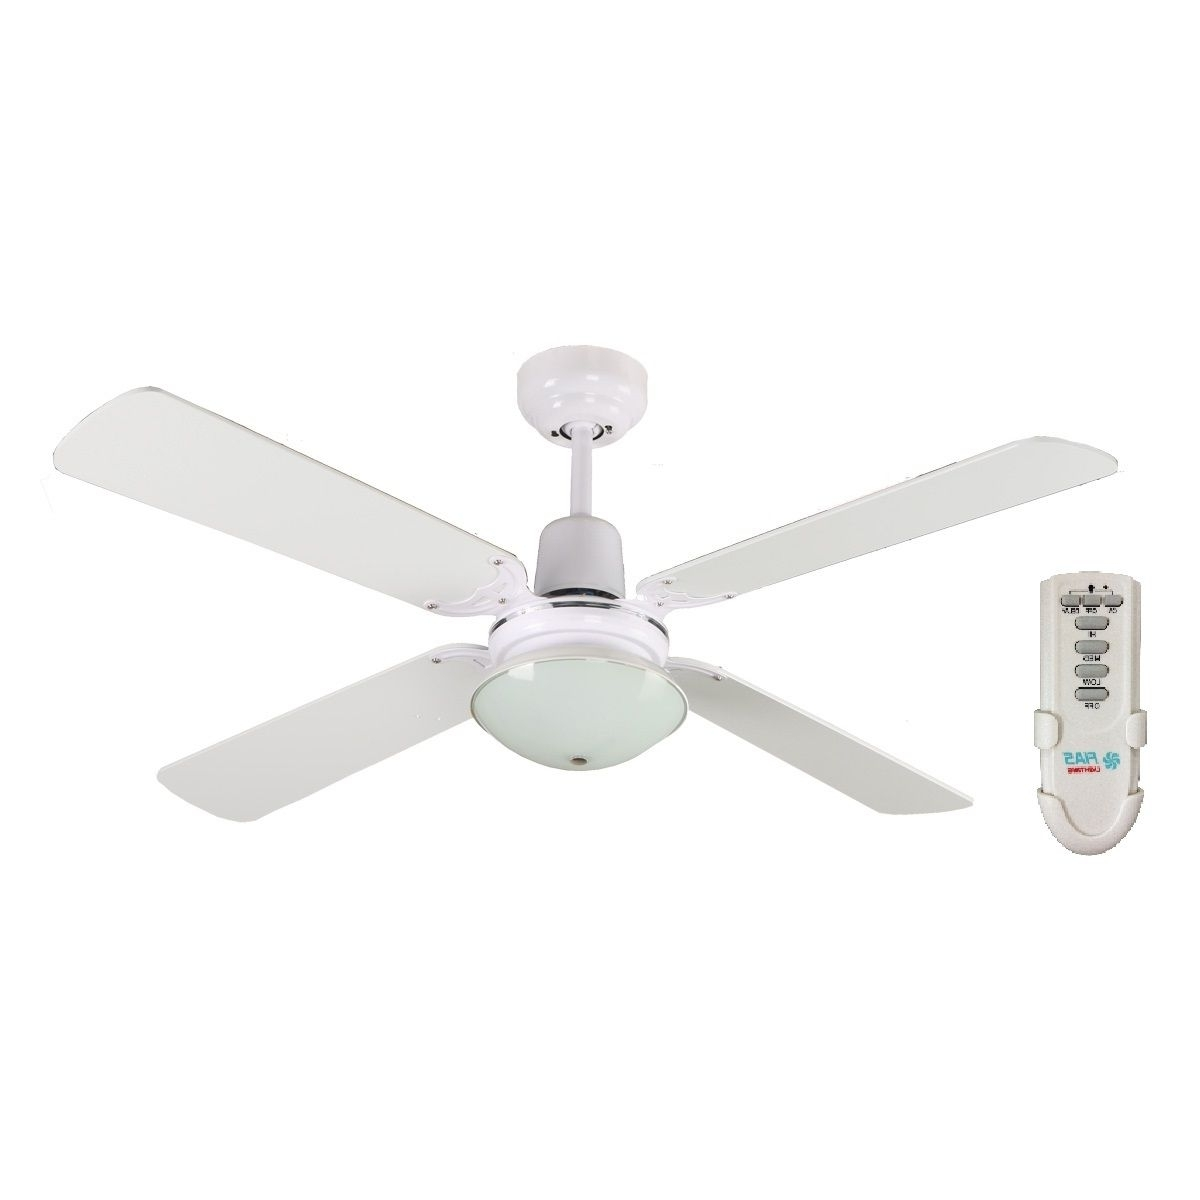 Outdoor Ceiling Fans At Bunnings Regarding 2019 Martec Ceiling Fans Bunnings (View 5 of 20)